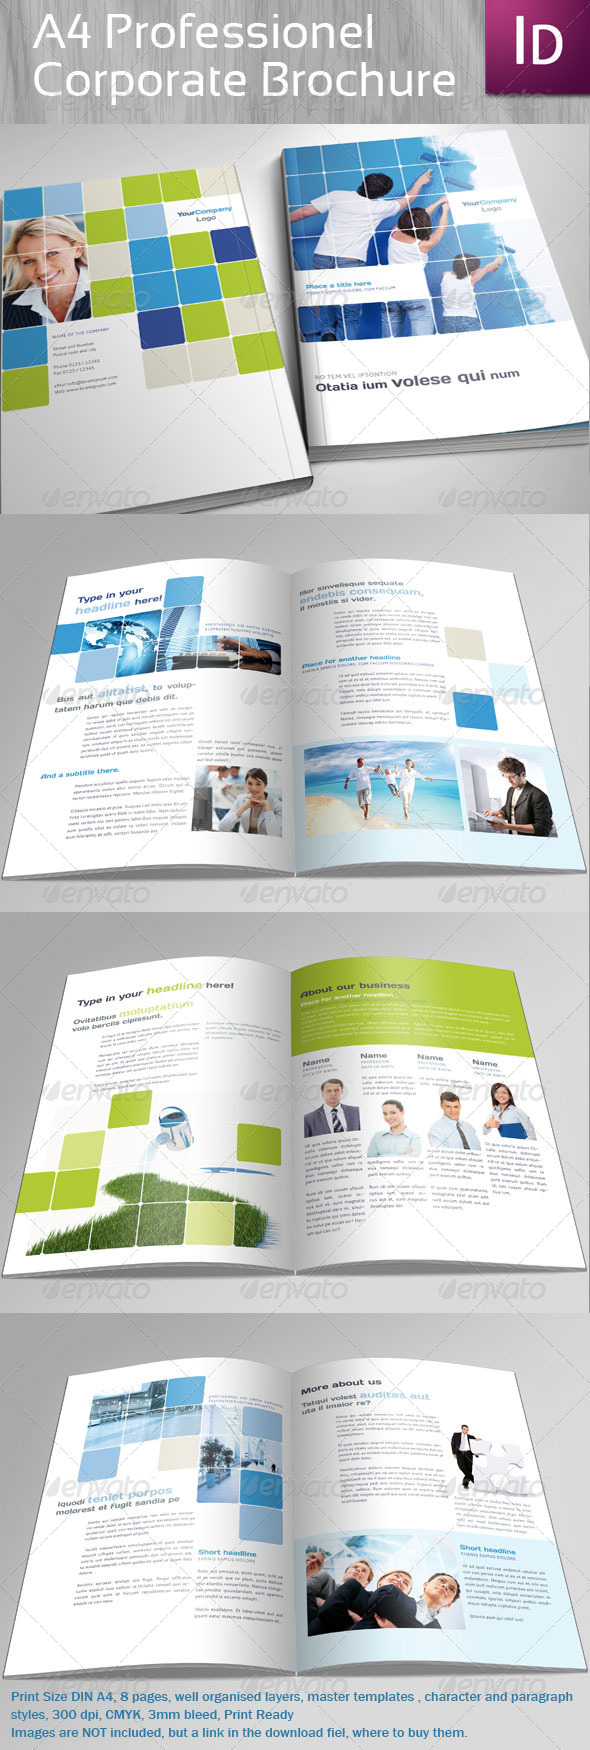 A4 Professional Corporate Brochure - Corporate Brochures